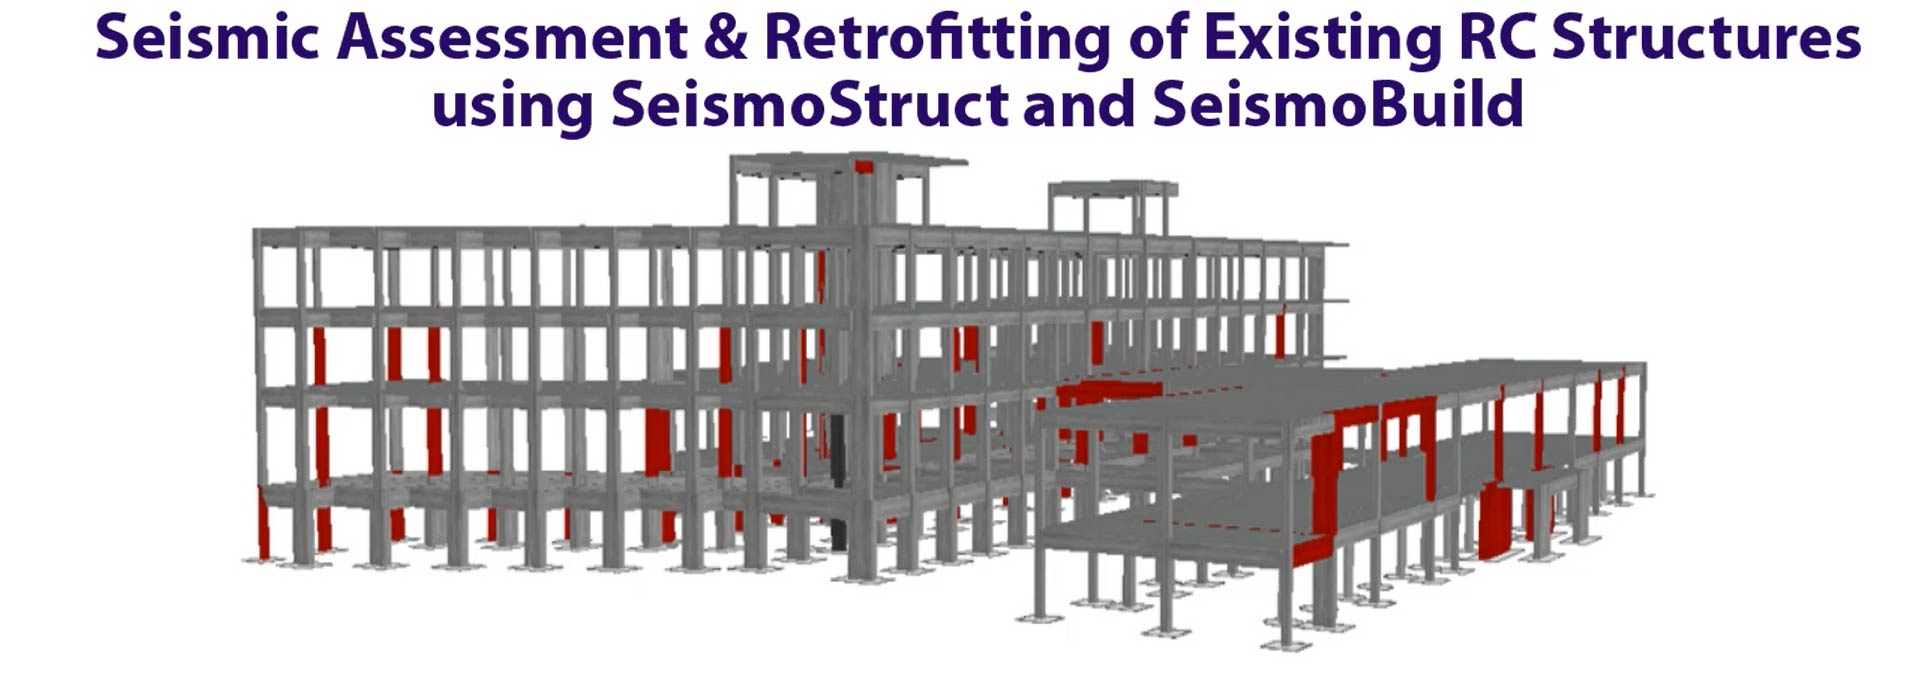 Seismic Assessment & Retrofitting of Existing RC Structures using SeismoStruct and SeismoBuild